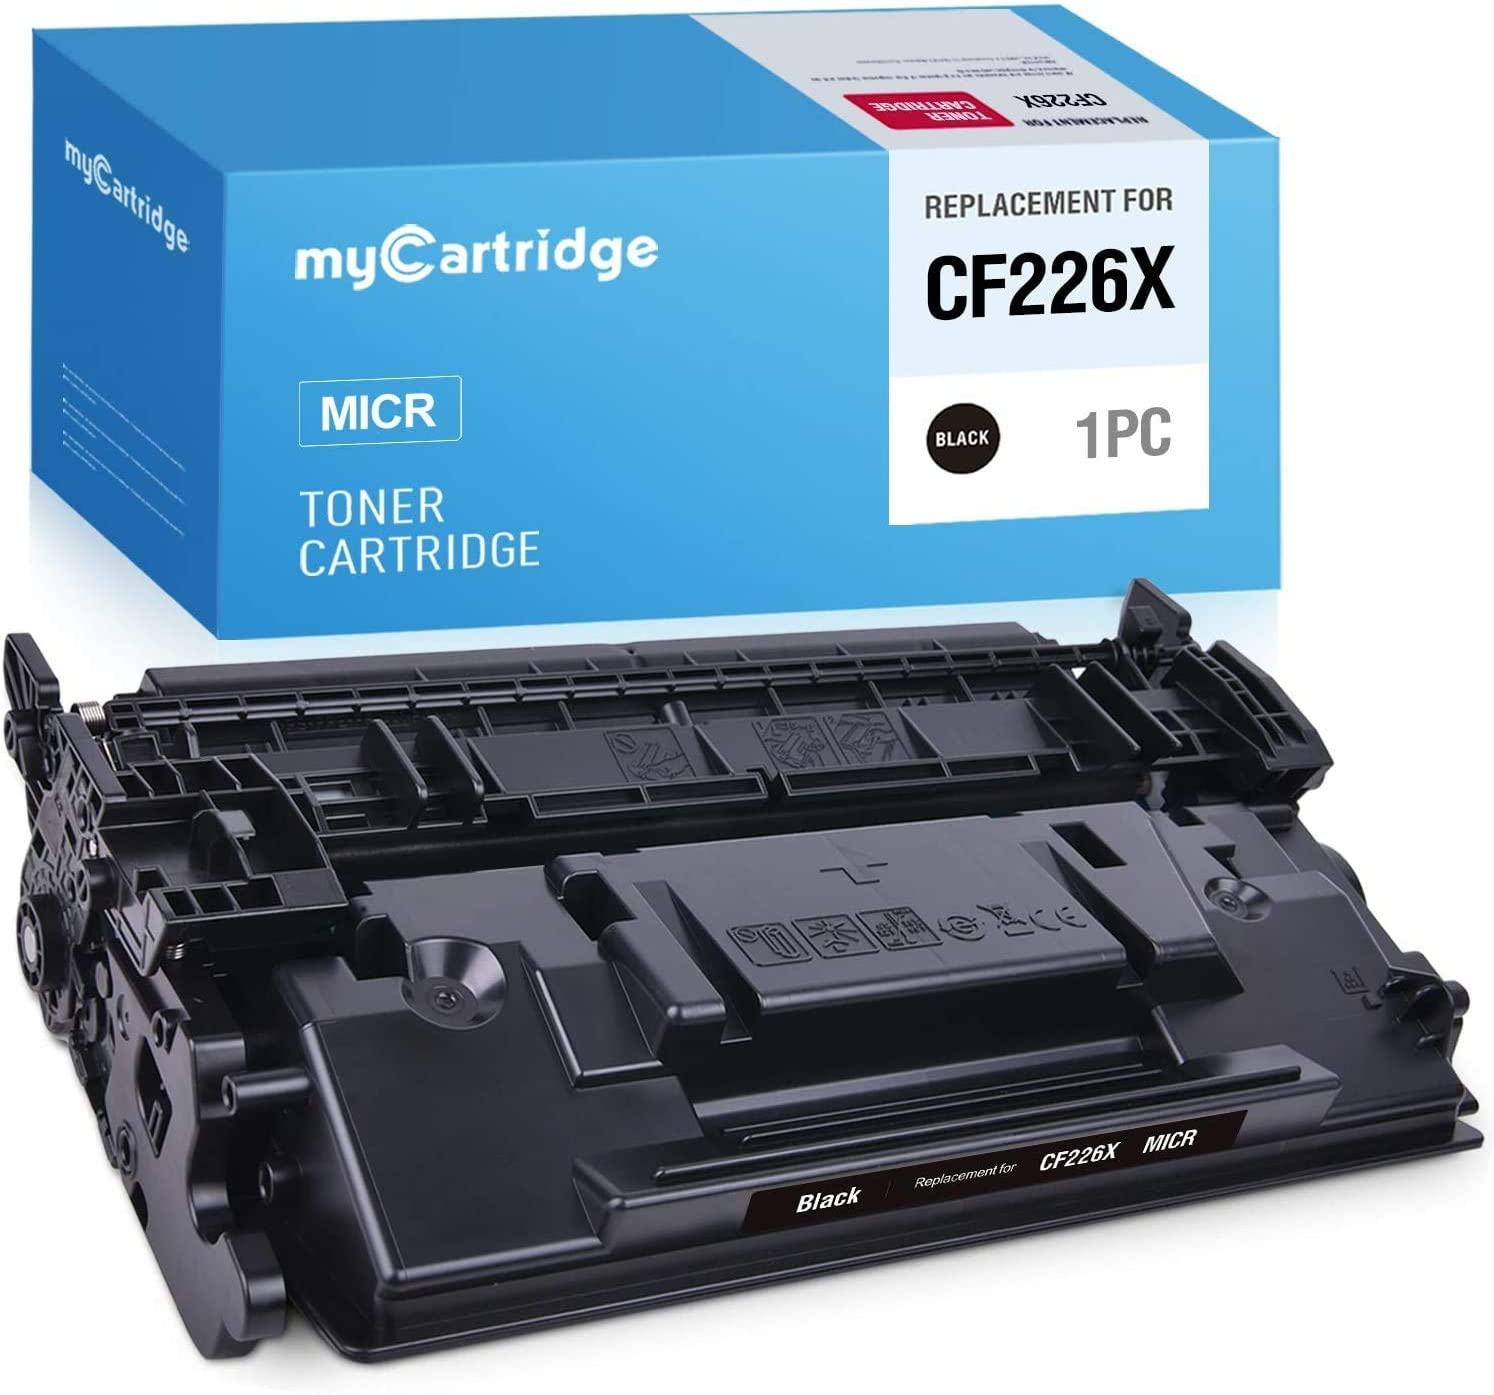 MYCARTRIDGE Compatible Toner Cartridge Replacement for HP CF226X 26X CF226A 26A High Yield Work with Laserjet Pro MFP M426fdw M402n M426fdn M402dn M402dw M426dw M402d (1 Black)